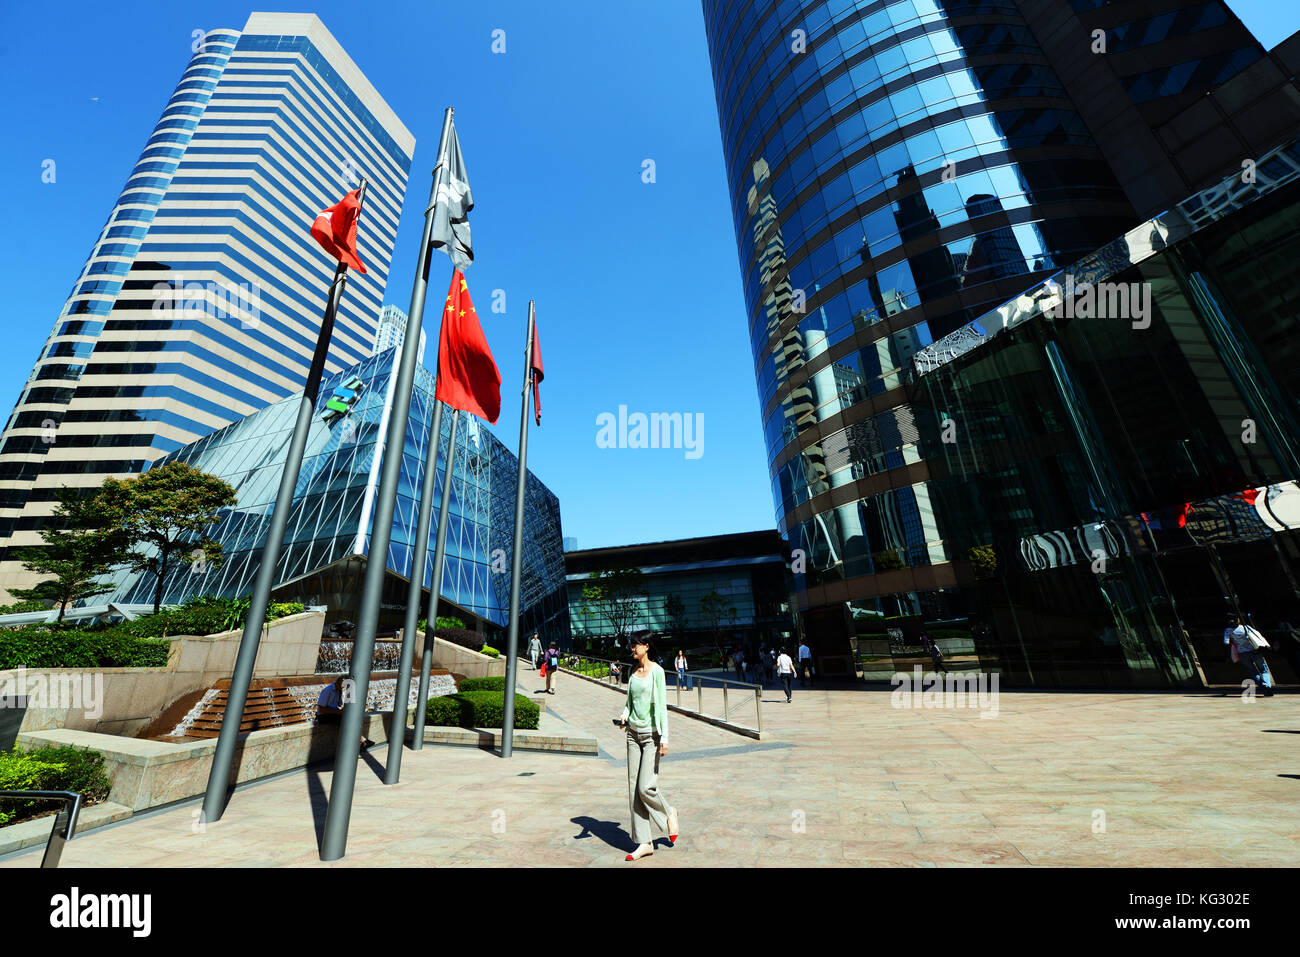 Exchange square in Hong Kong. - Stock Image